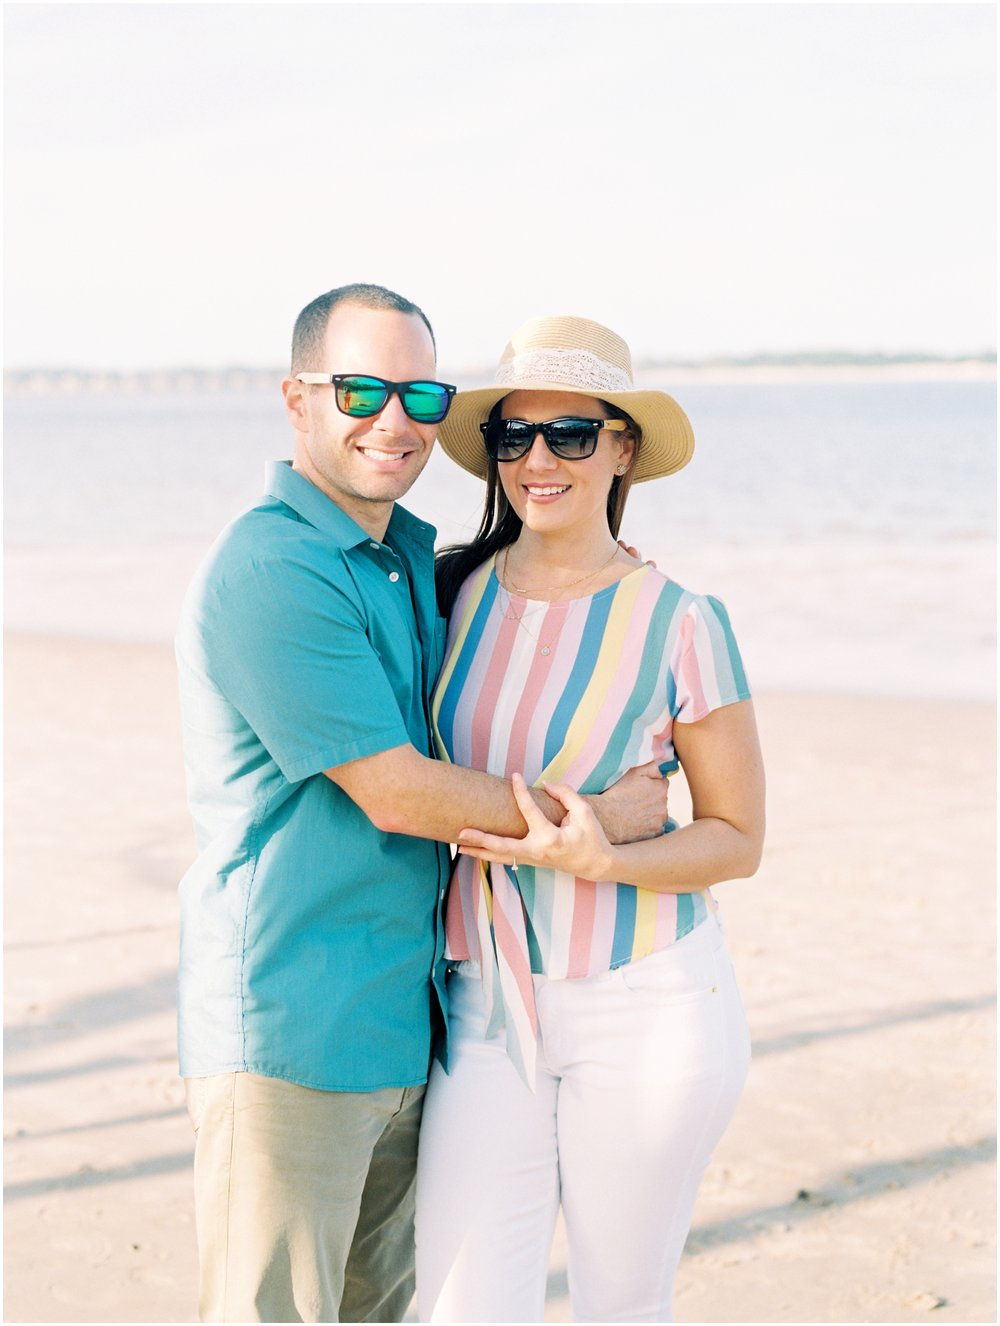 Lisa Silva Photography -Engagement Session at Big Talbot Island- Jacksonville and North East Florida Fine Art Film Photographer_0026.jpg